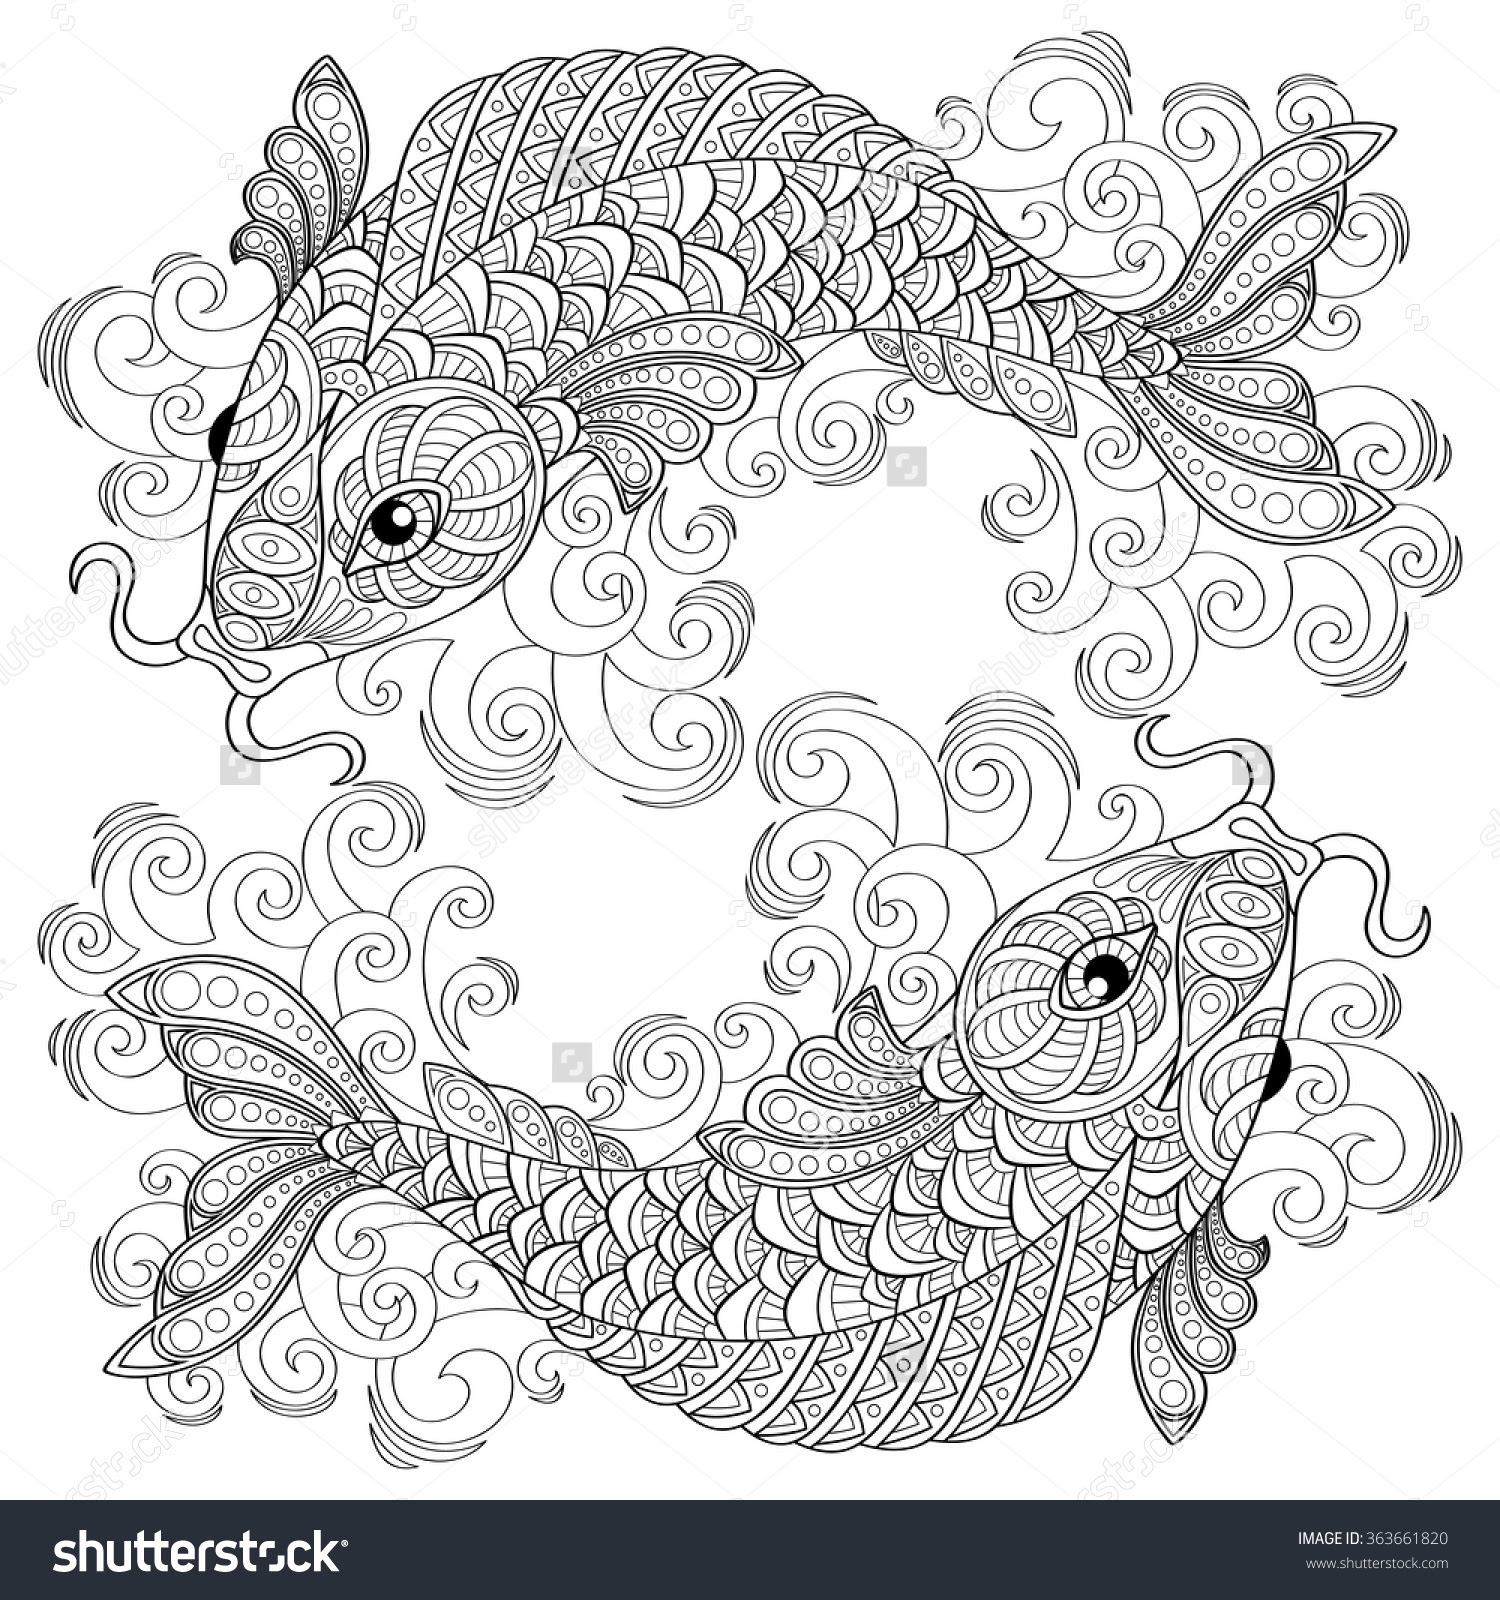 Koi Fish Coloring Pages For Adults Free Printable Koi Fish